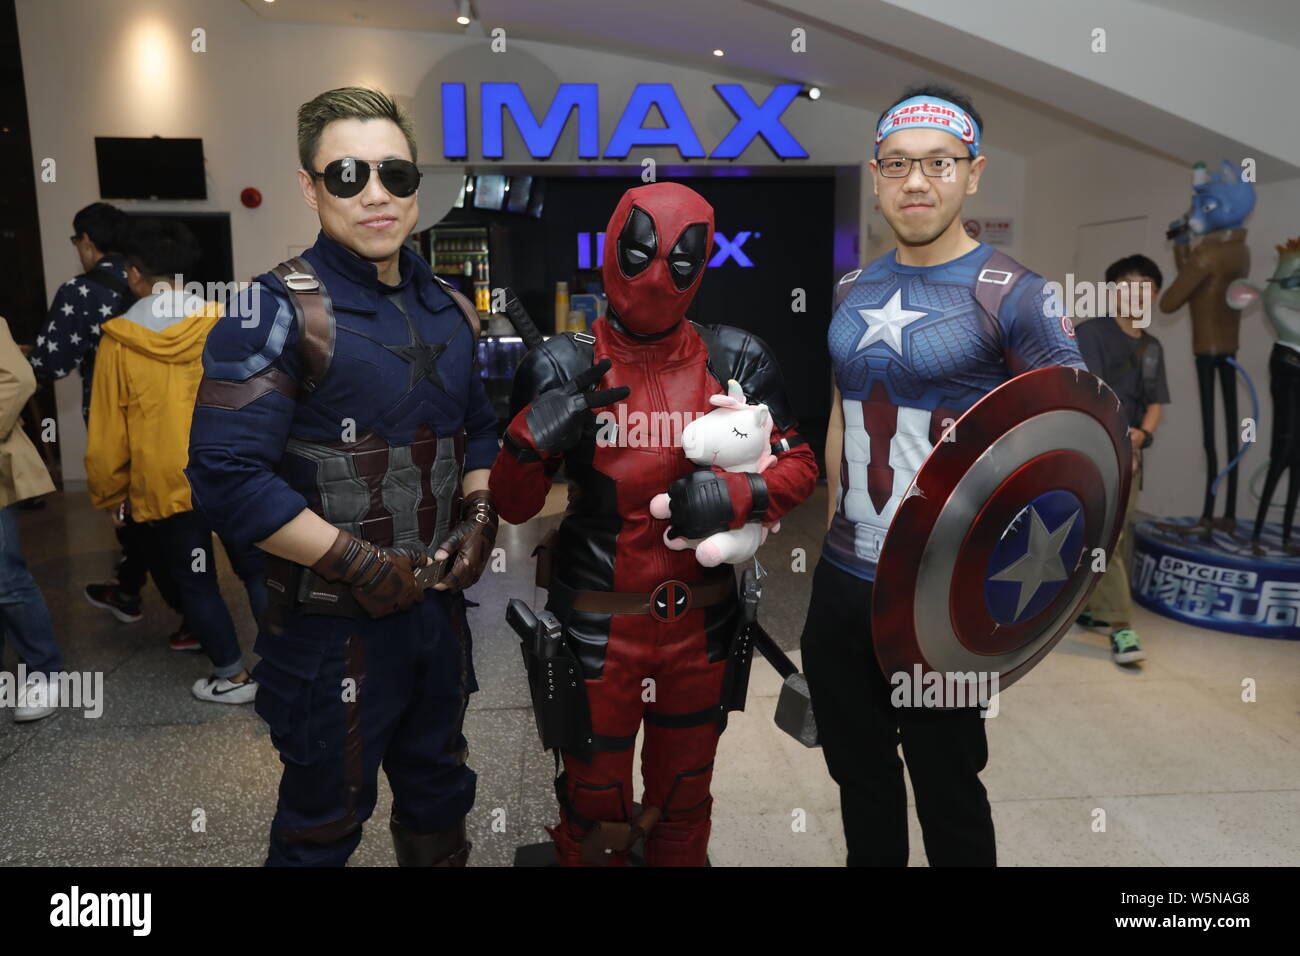 """Chinese filmgoers wearing costumes of Avengers superheroes wait inside a cinema before the midnight premiere of Disney and Marvel's """"Avengers: Endgame Stock Photo"""